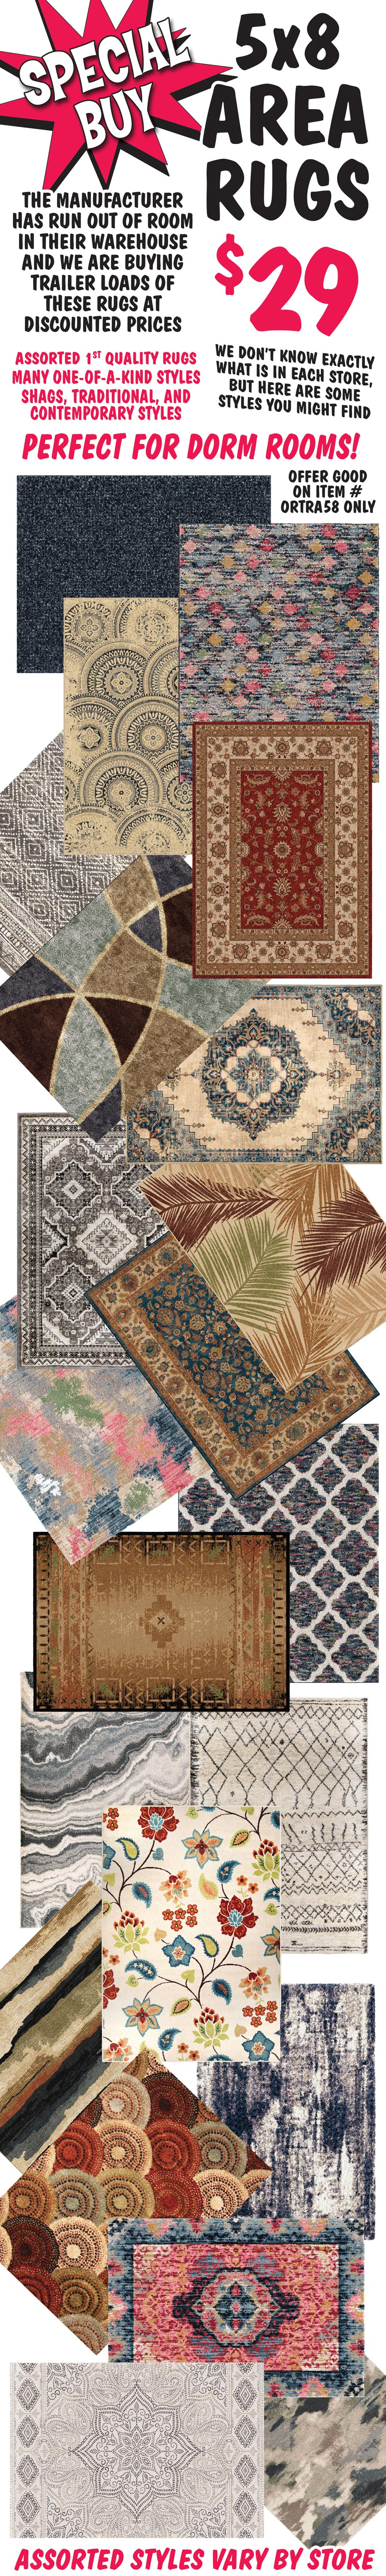 Special Buy - $29 5 by 8 Rugs - Hurry in while they last! When they're gone, they're gone!